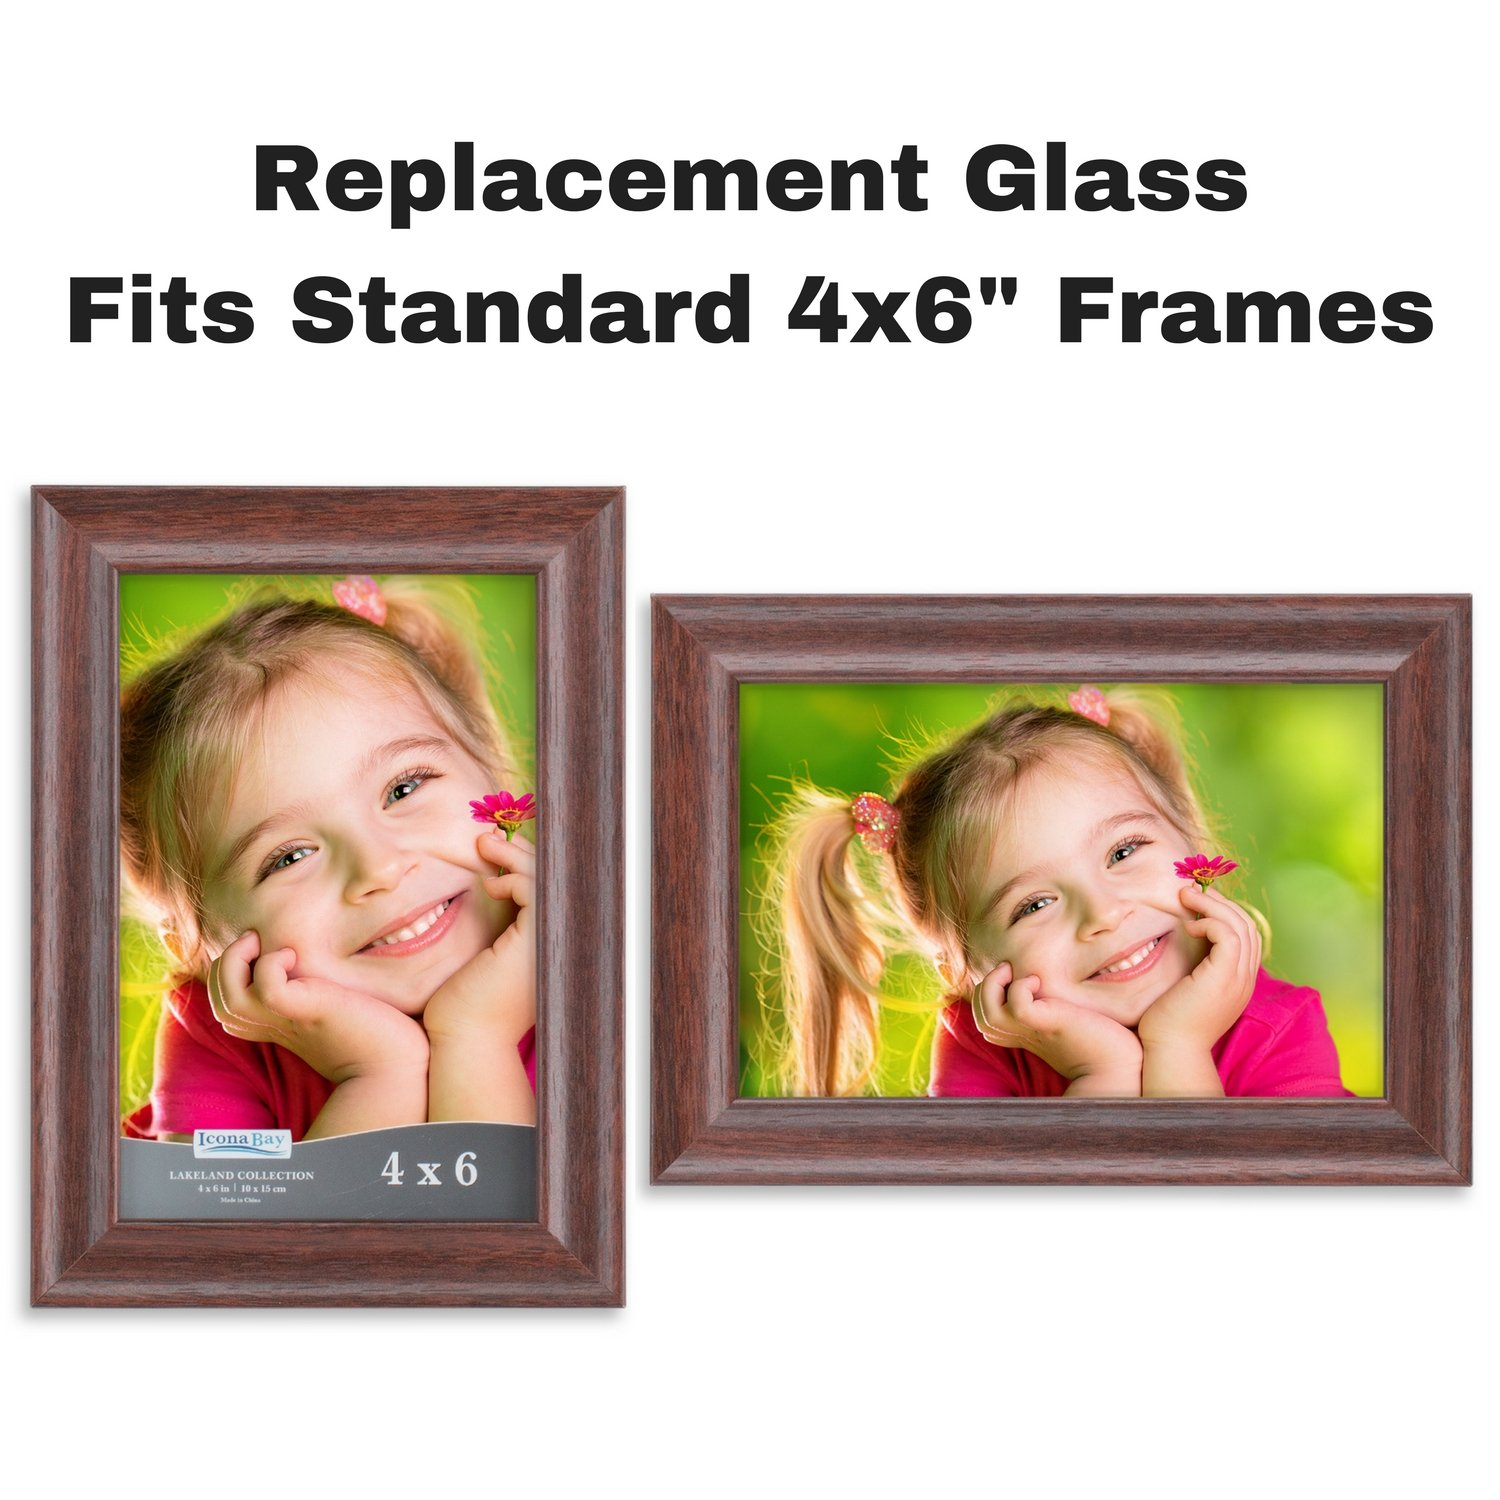 Amazoncom Icona Bay 4x6 Picture Frame Glass Replacement 4 X 6 2